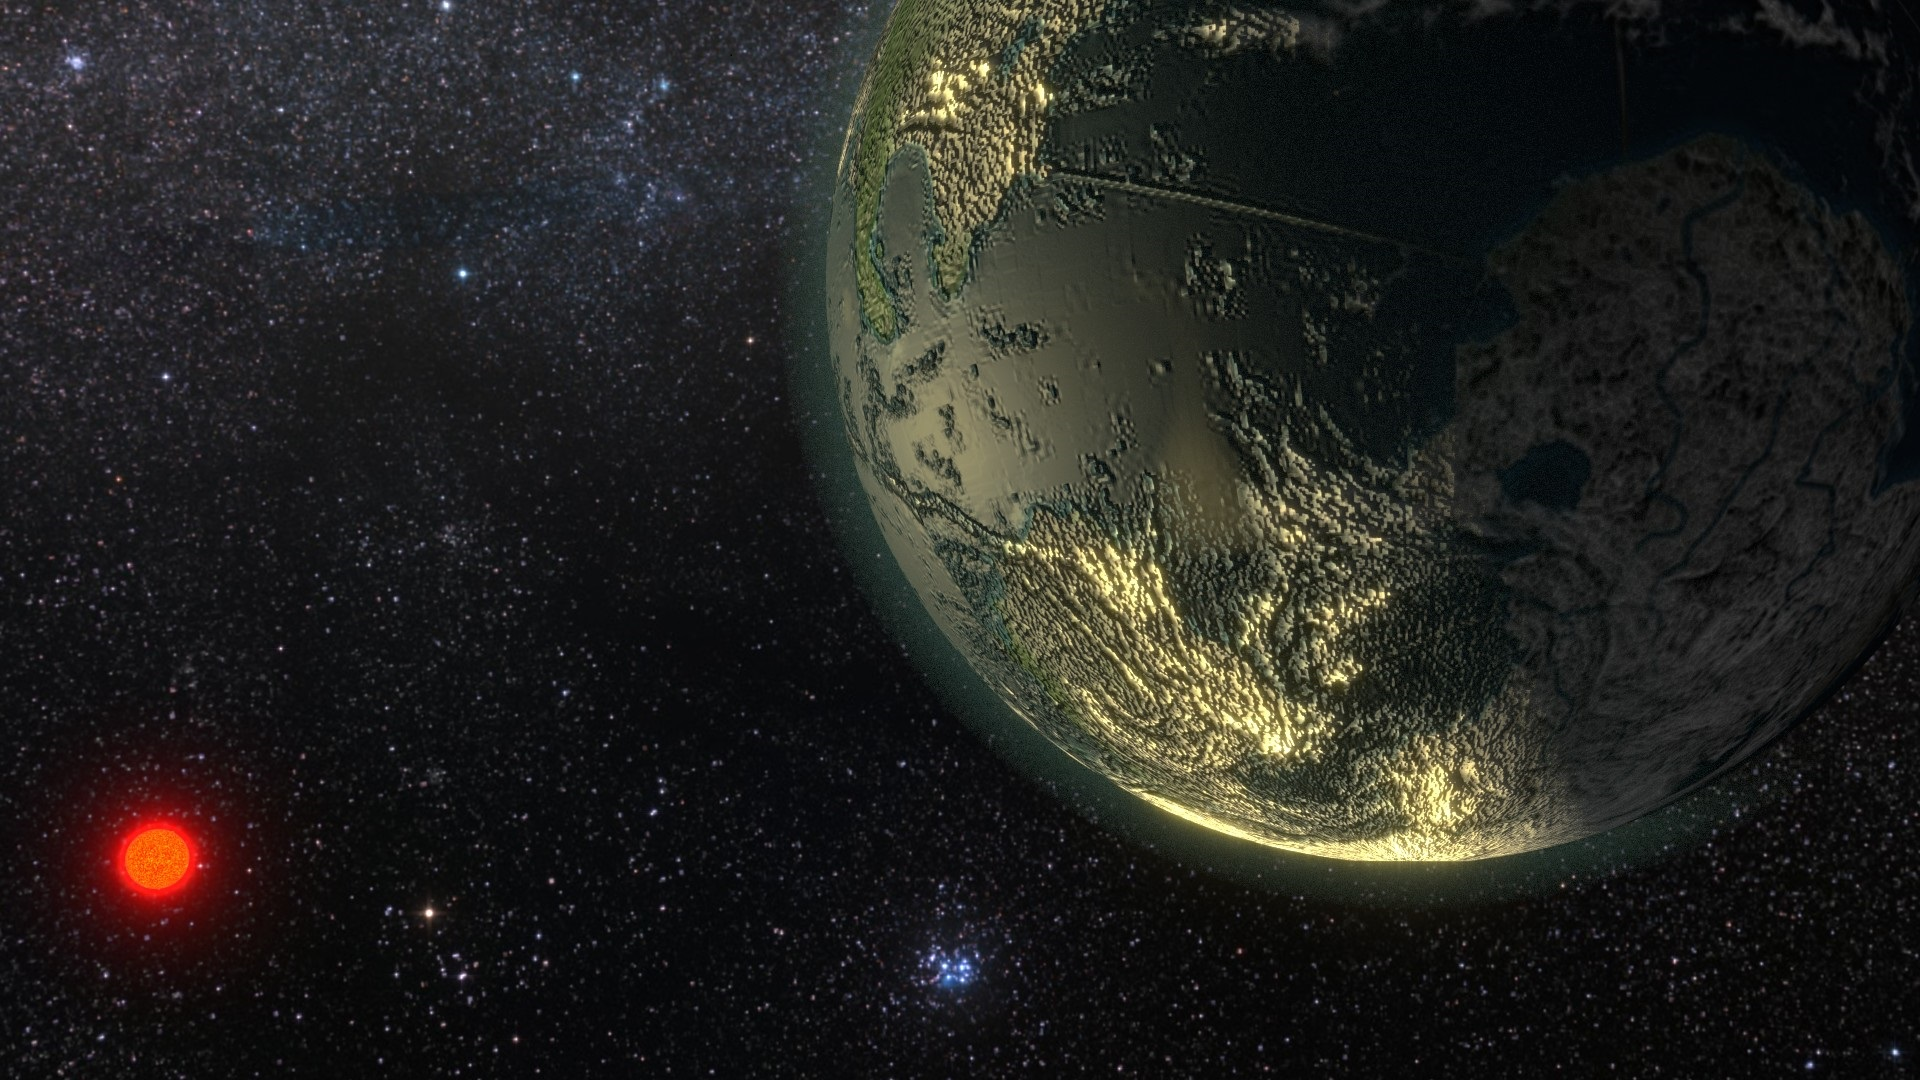 Scientists Have Identified More Than 100 New Planets That Could Be Home to Aliens - Los Angeles Magazine